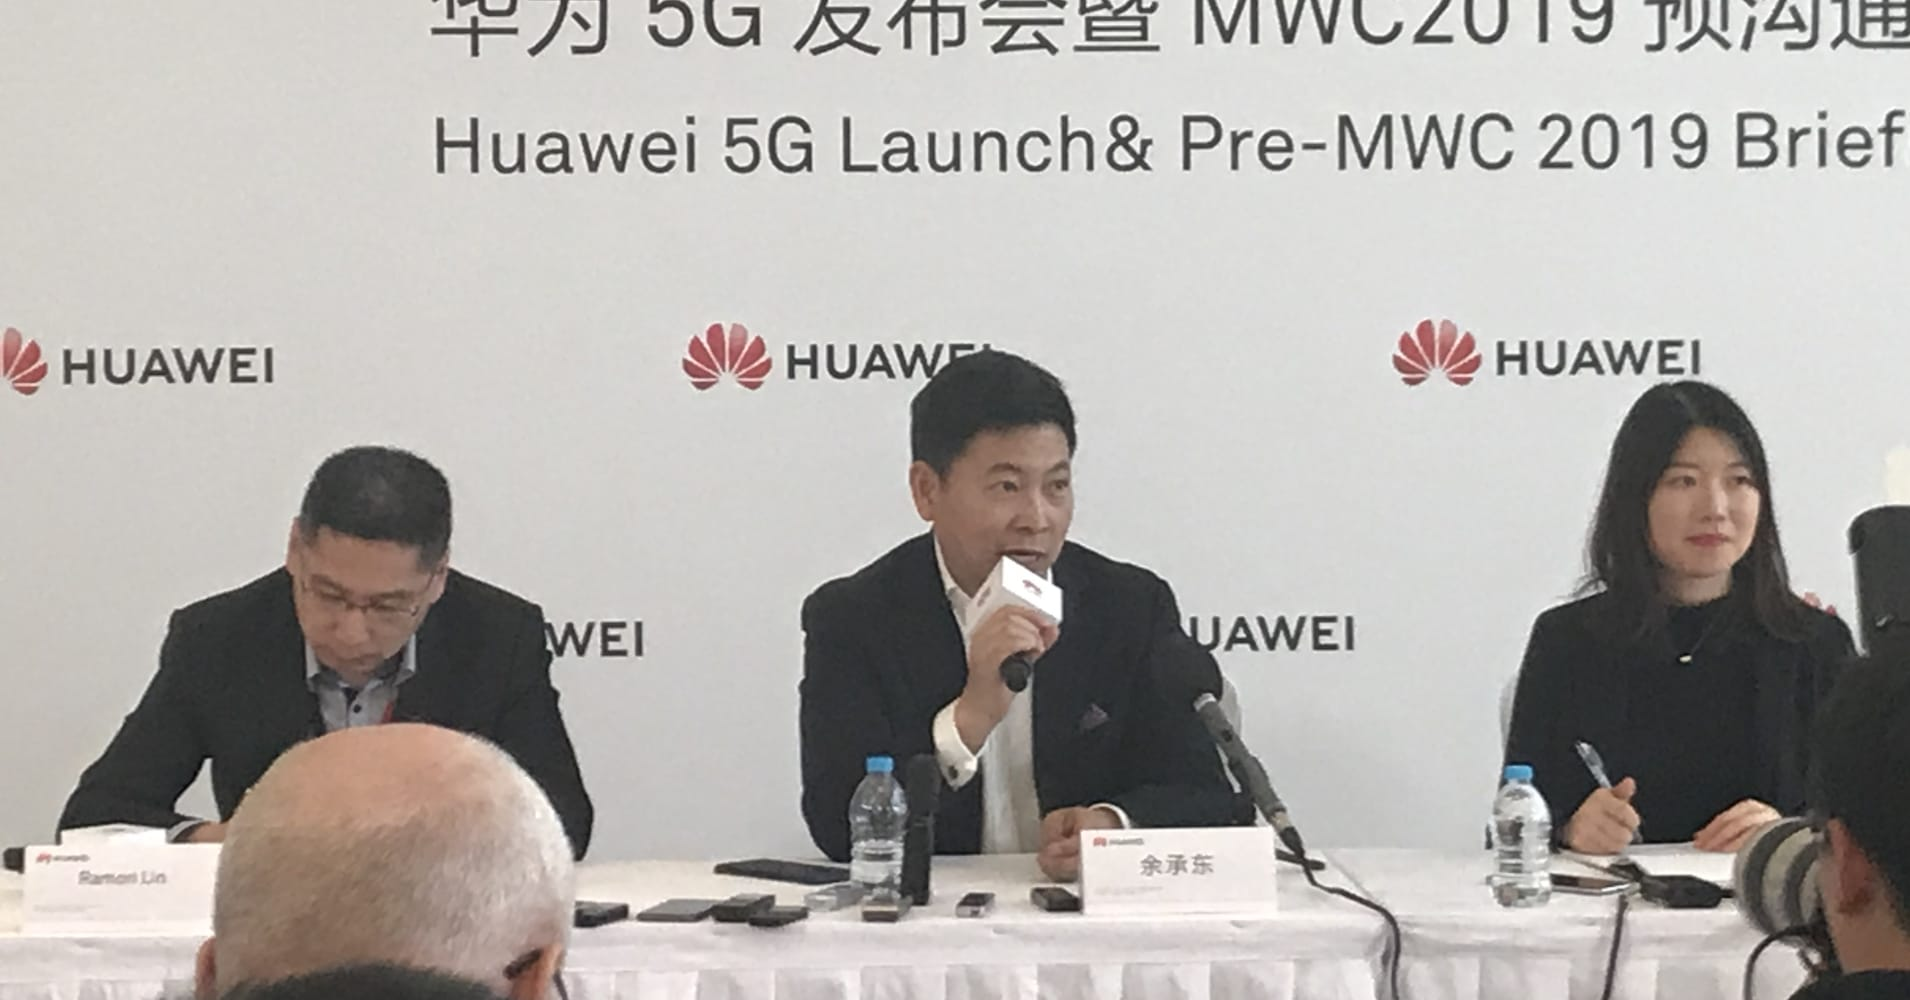 Huawei exec: 'Some political guys' are trying to drag down business, but we're still confident